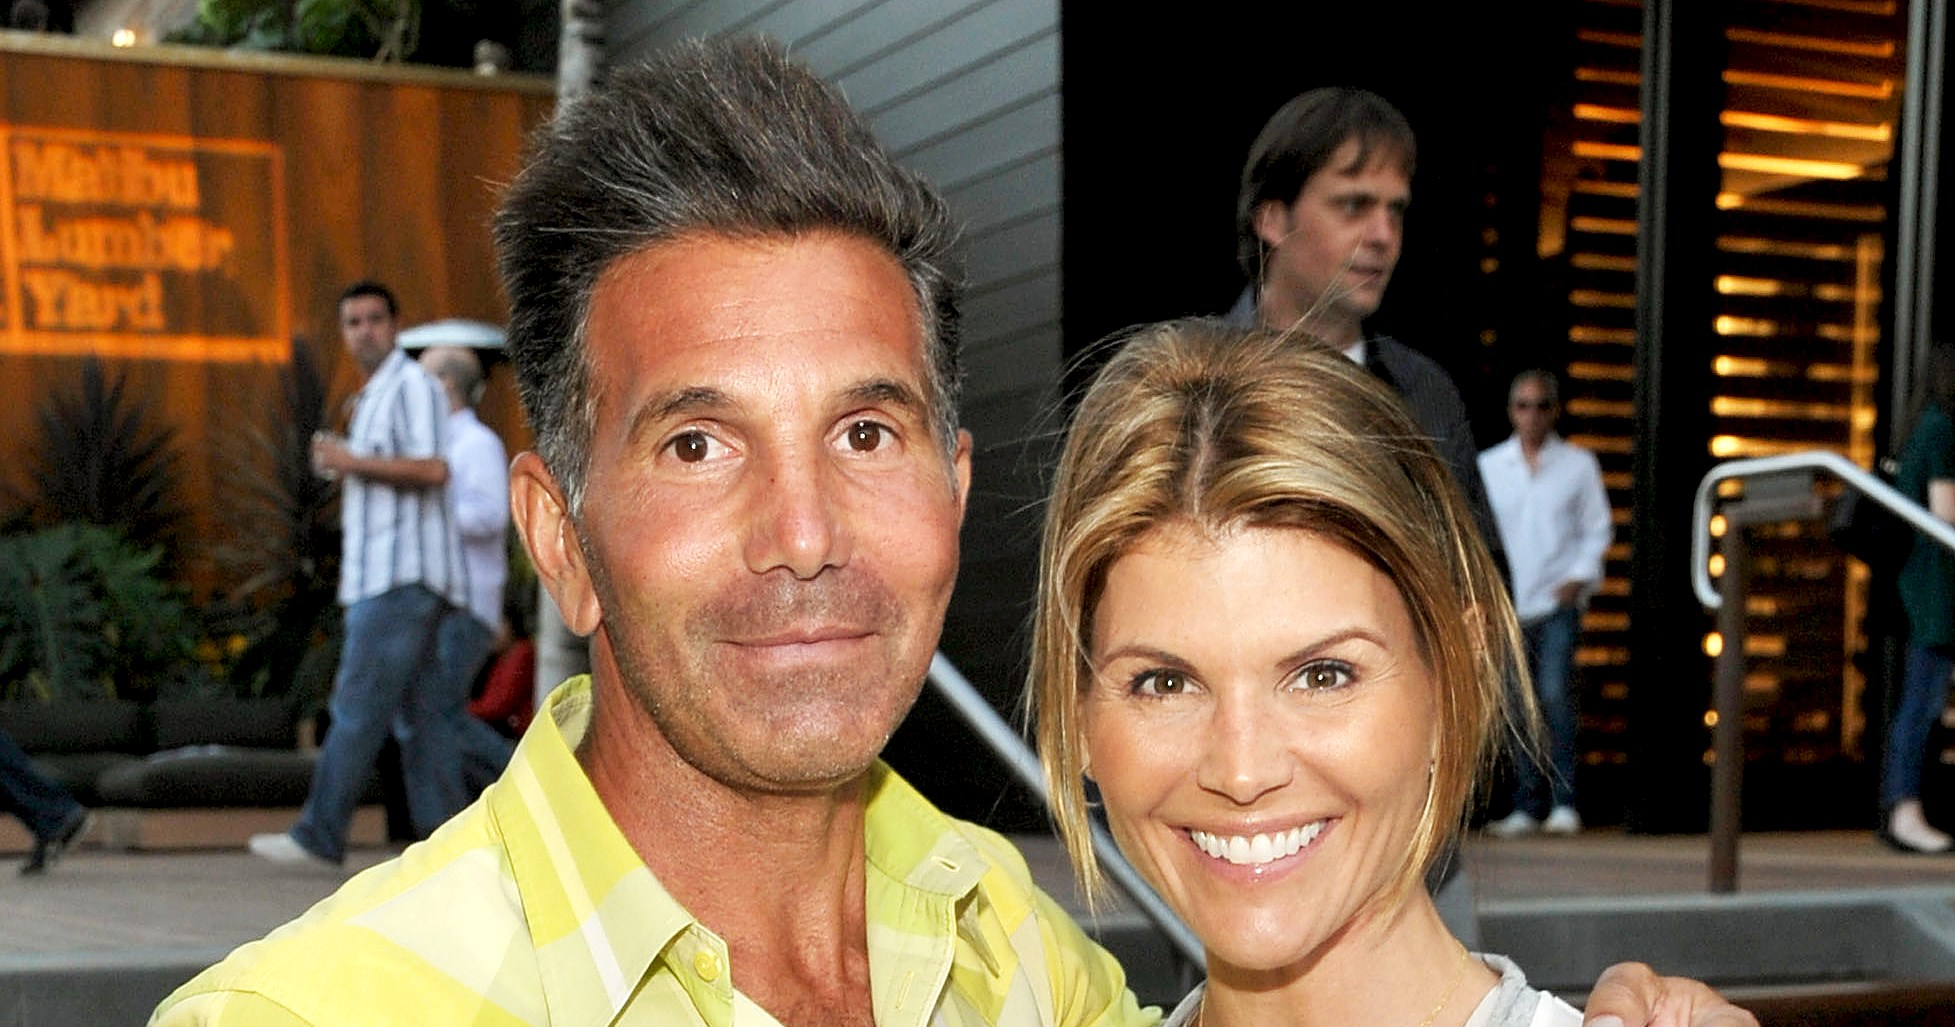 Lori Loughlin, Husband Mossimo Giannulli Will Be Audited by IRS Over Scandal